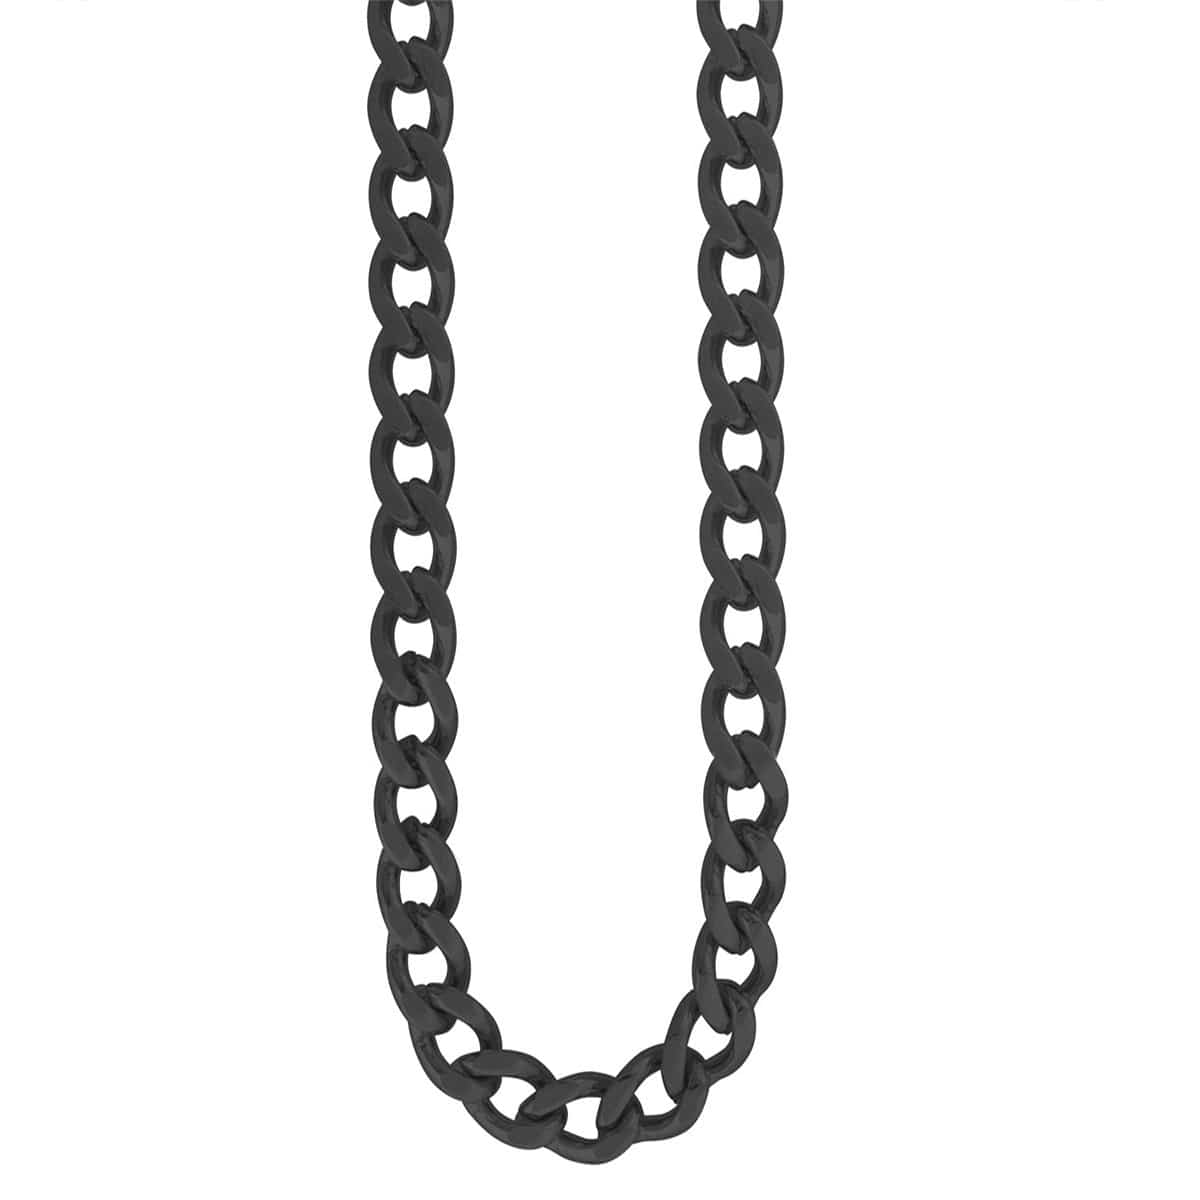 Black Stainless Steel 4mm Flat Curb Polished Chain